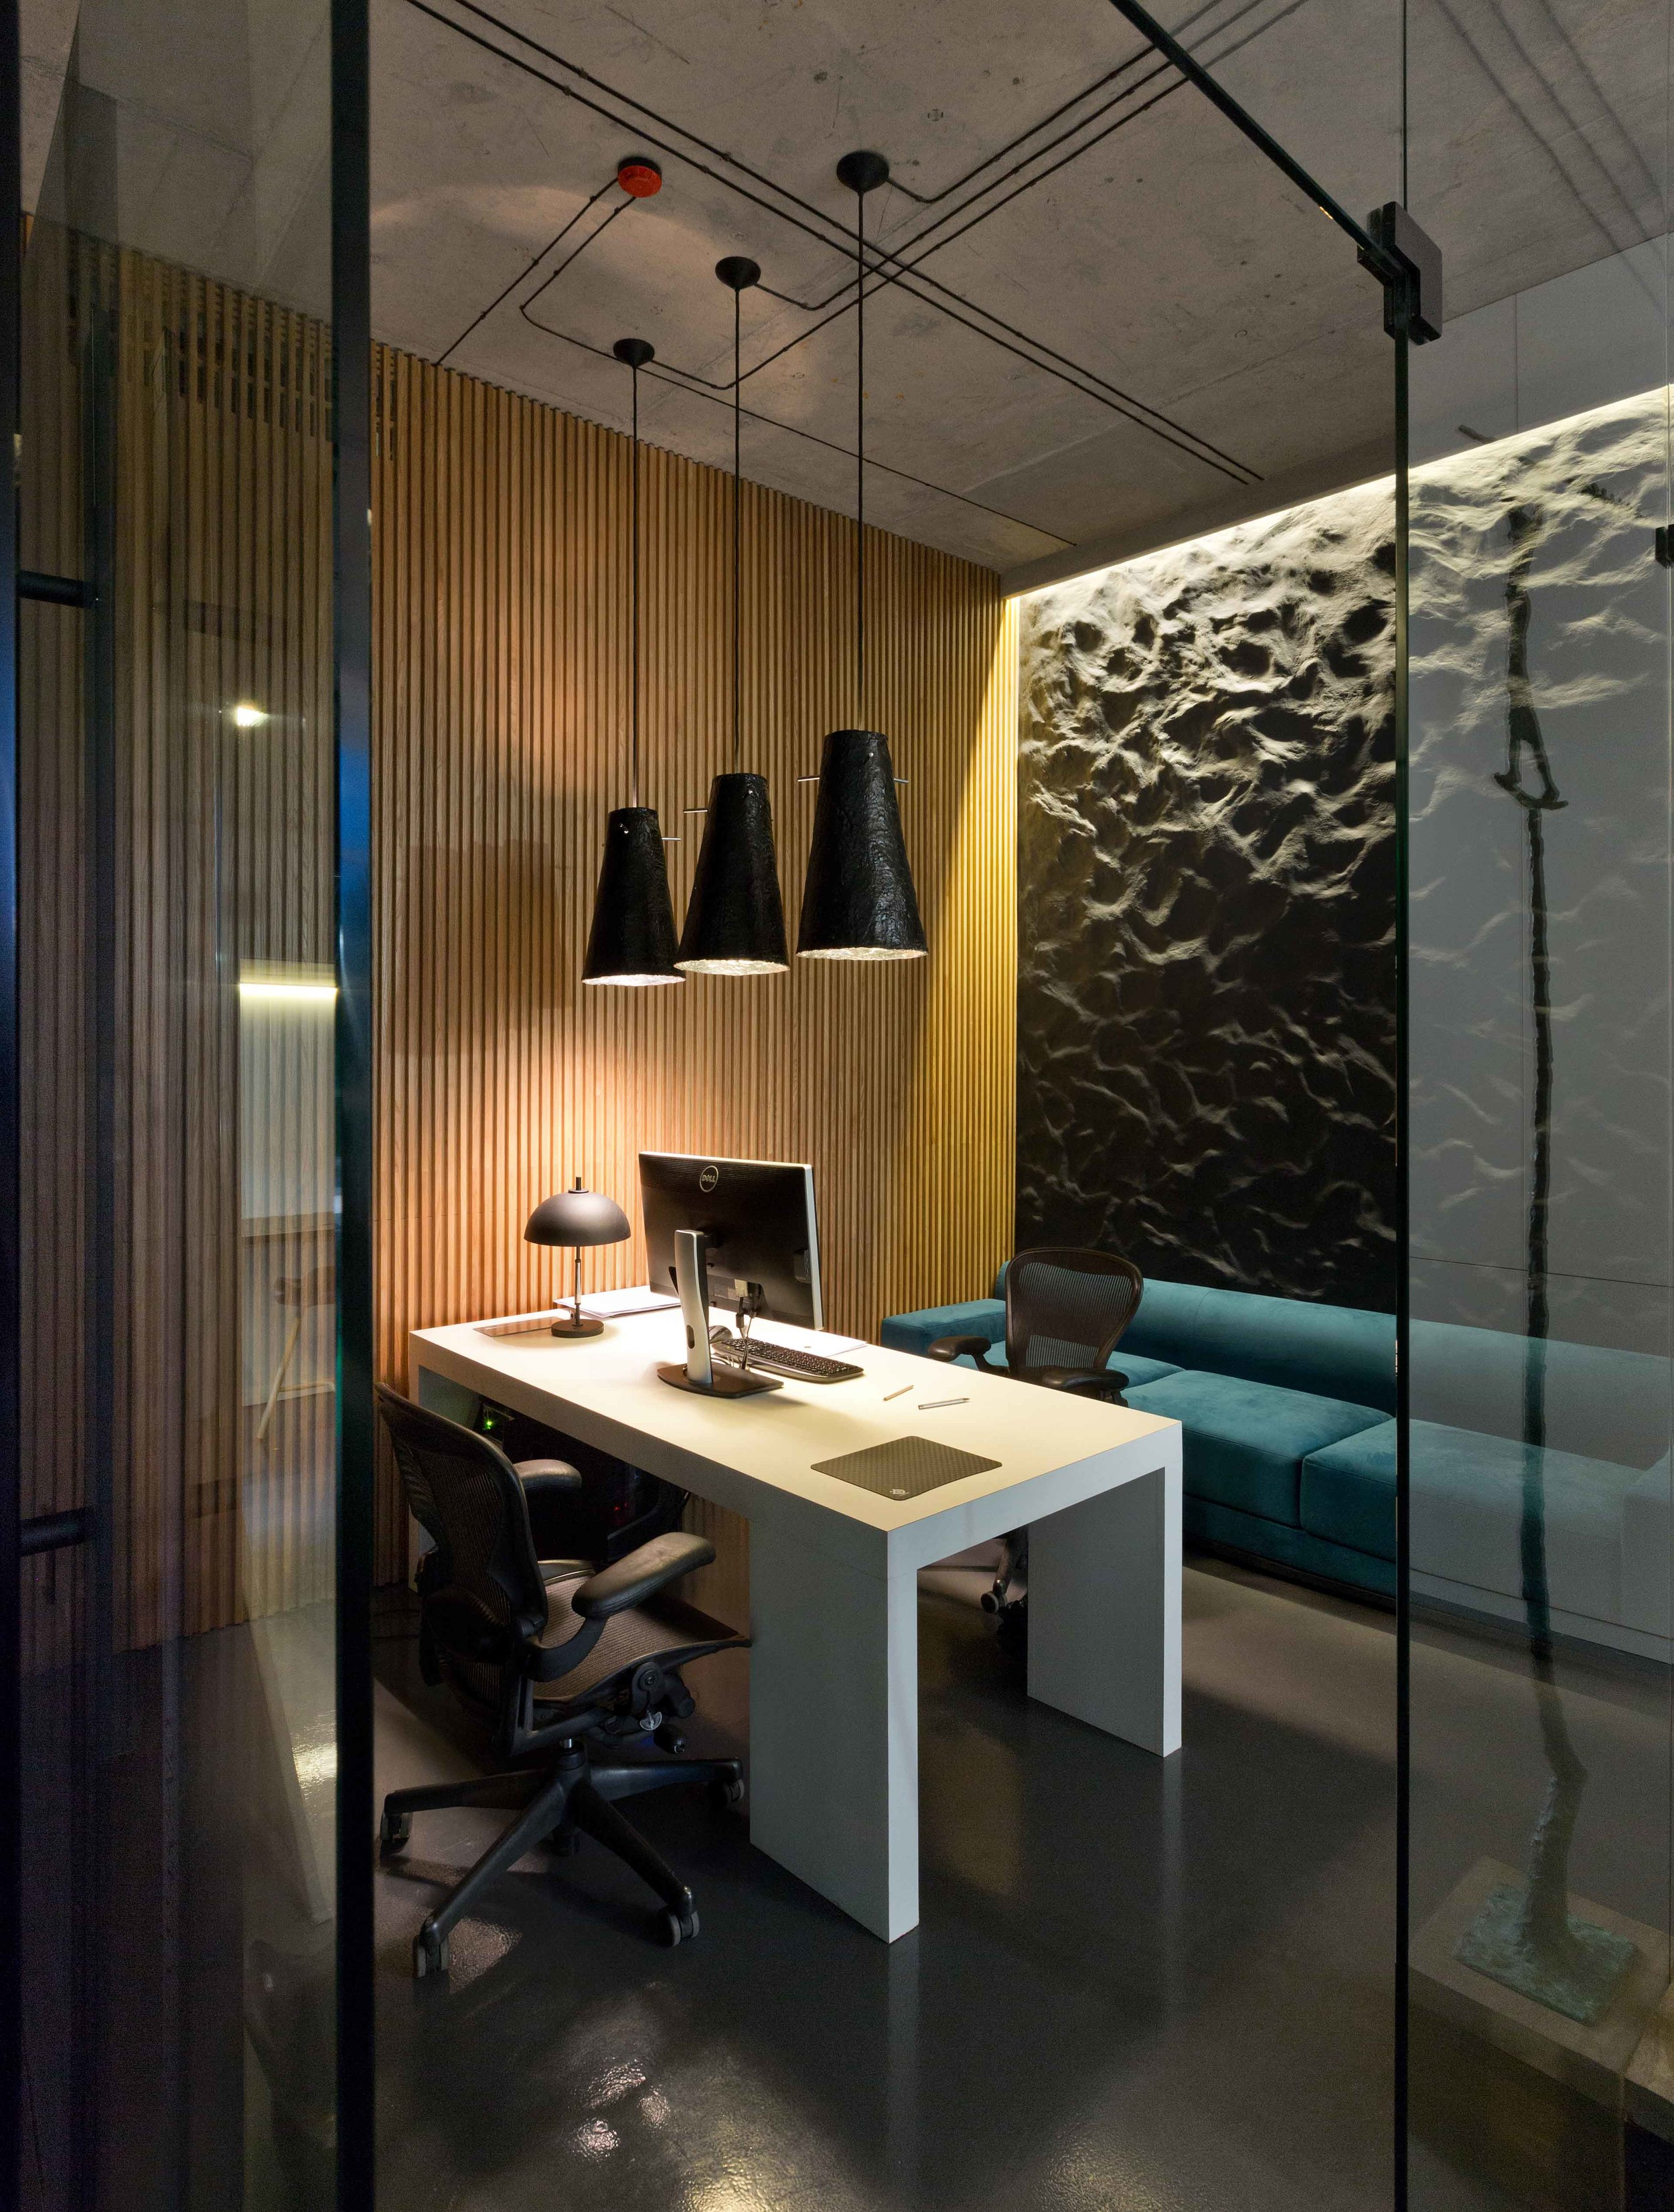 furniture-modern-minimalist-office-design-with-high-ceiling-and-hanging-pendant-lamp-with-low-light-plus-white-desk-with-black-leather-office-chairs-and-wood-wall-cladding-panels-plus-blue.jpg